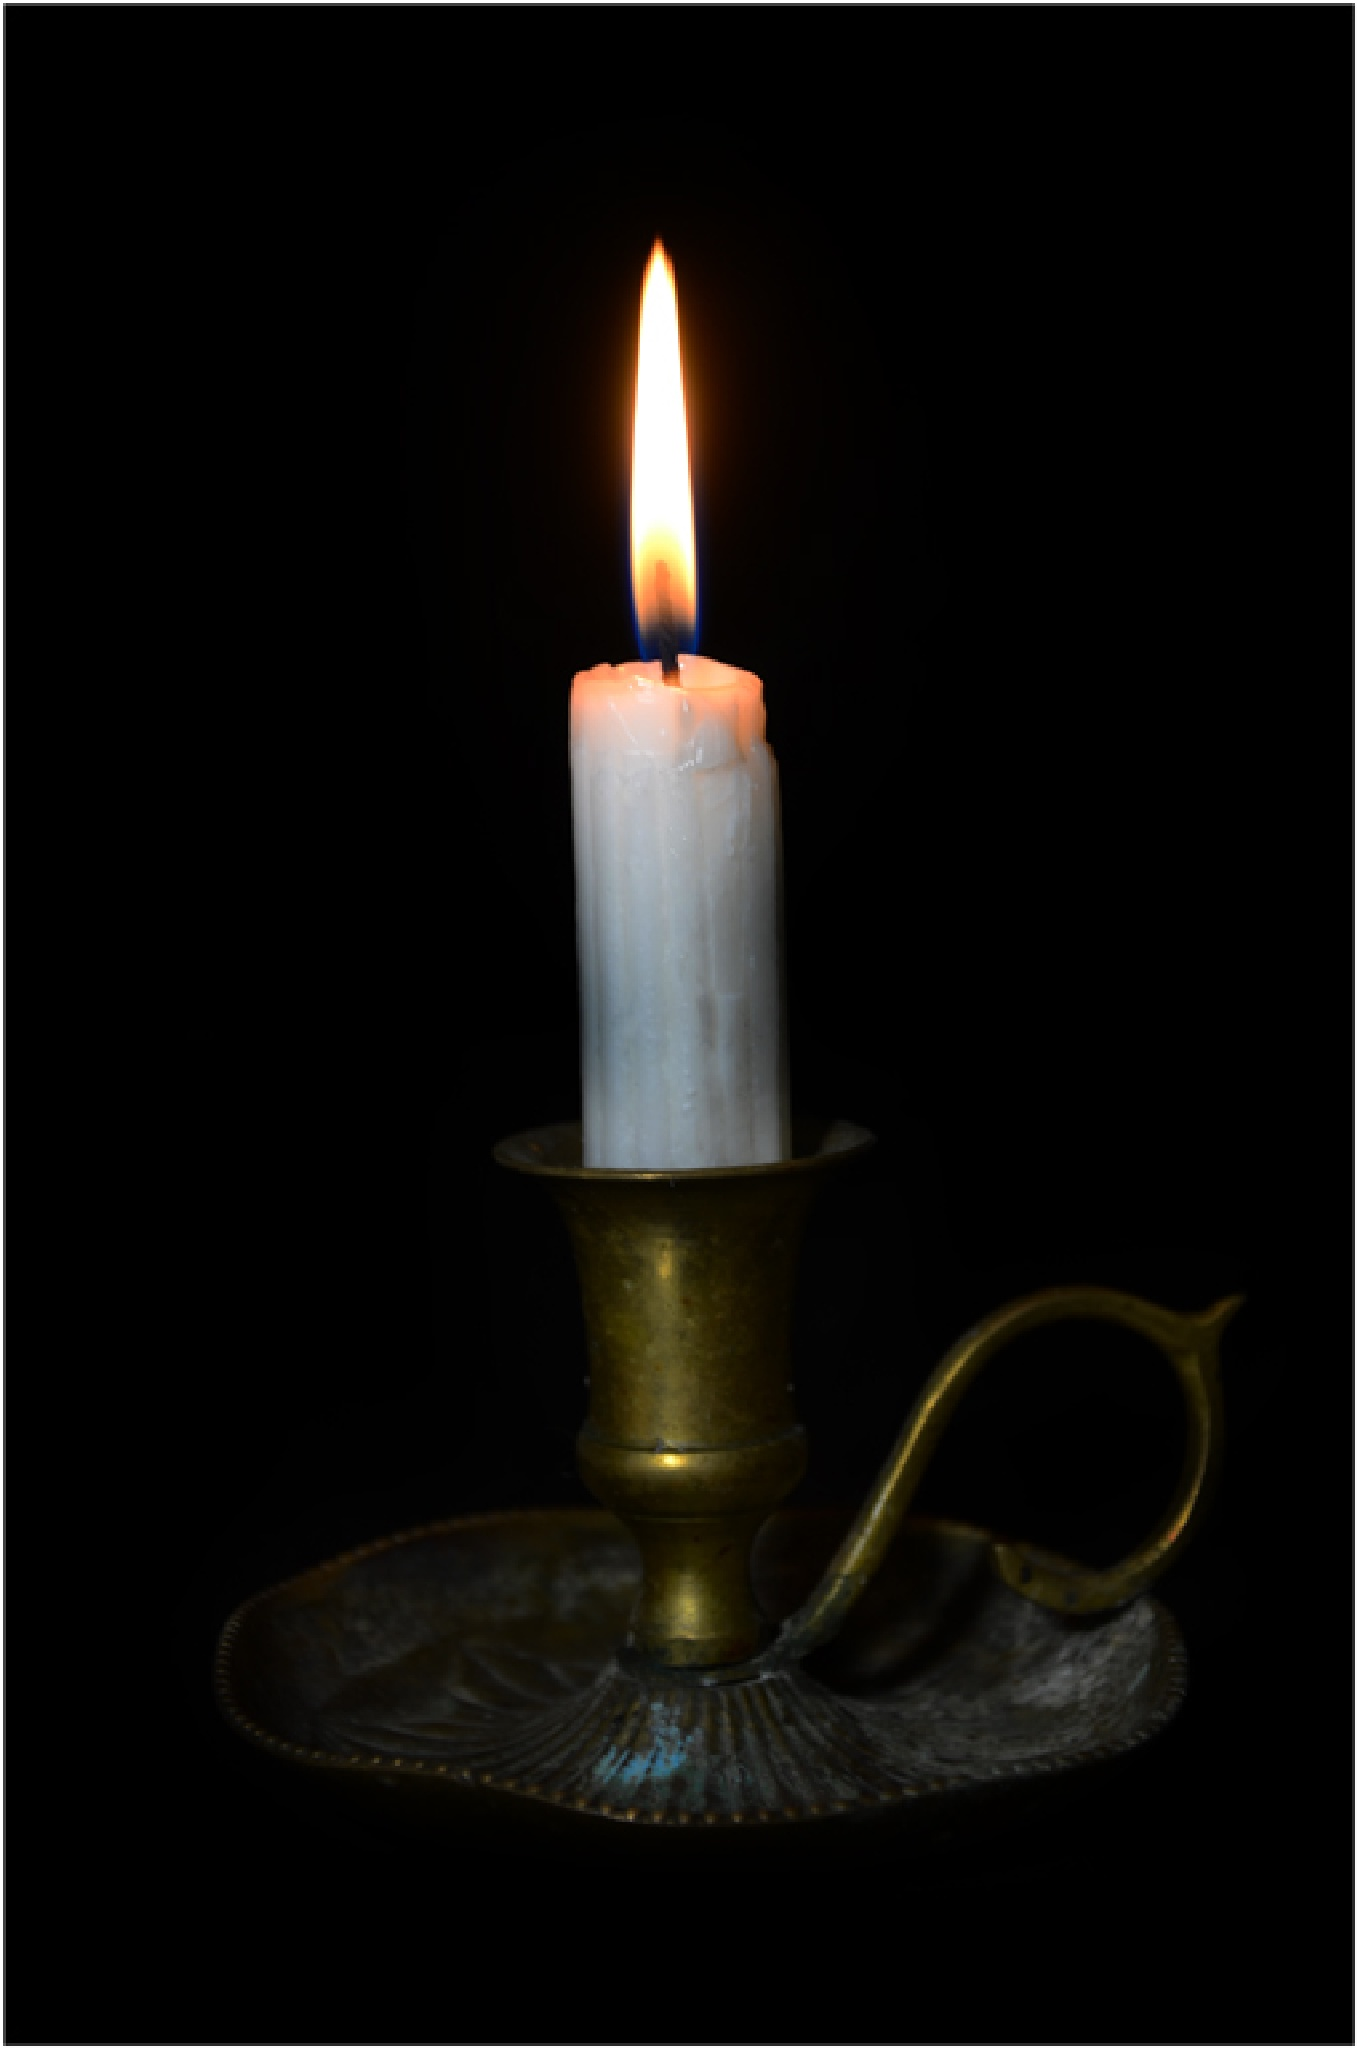 Candle light by Bertie Price